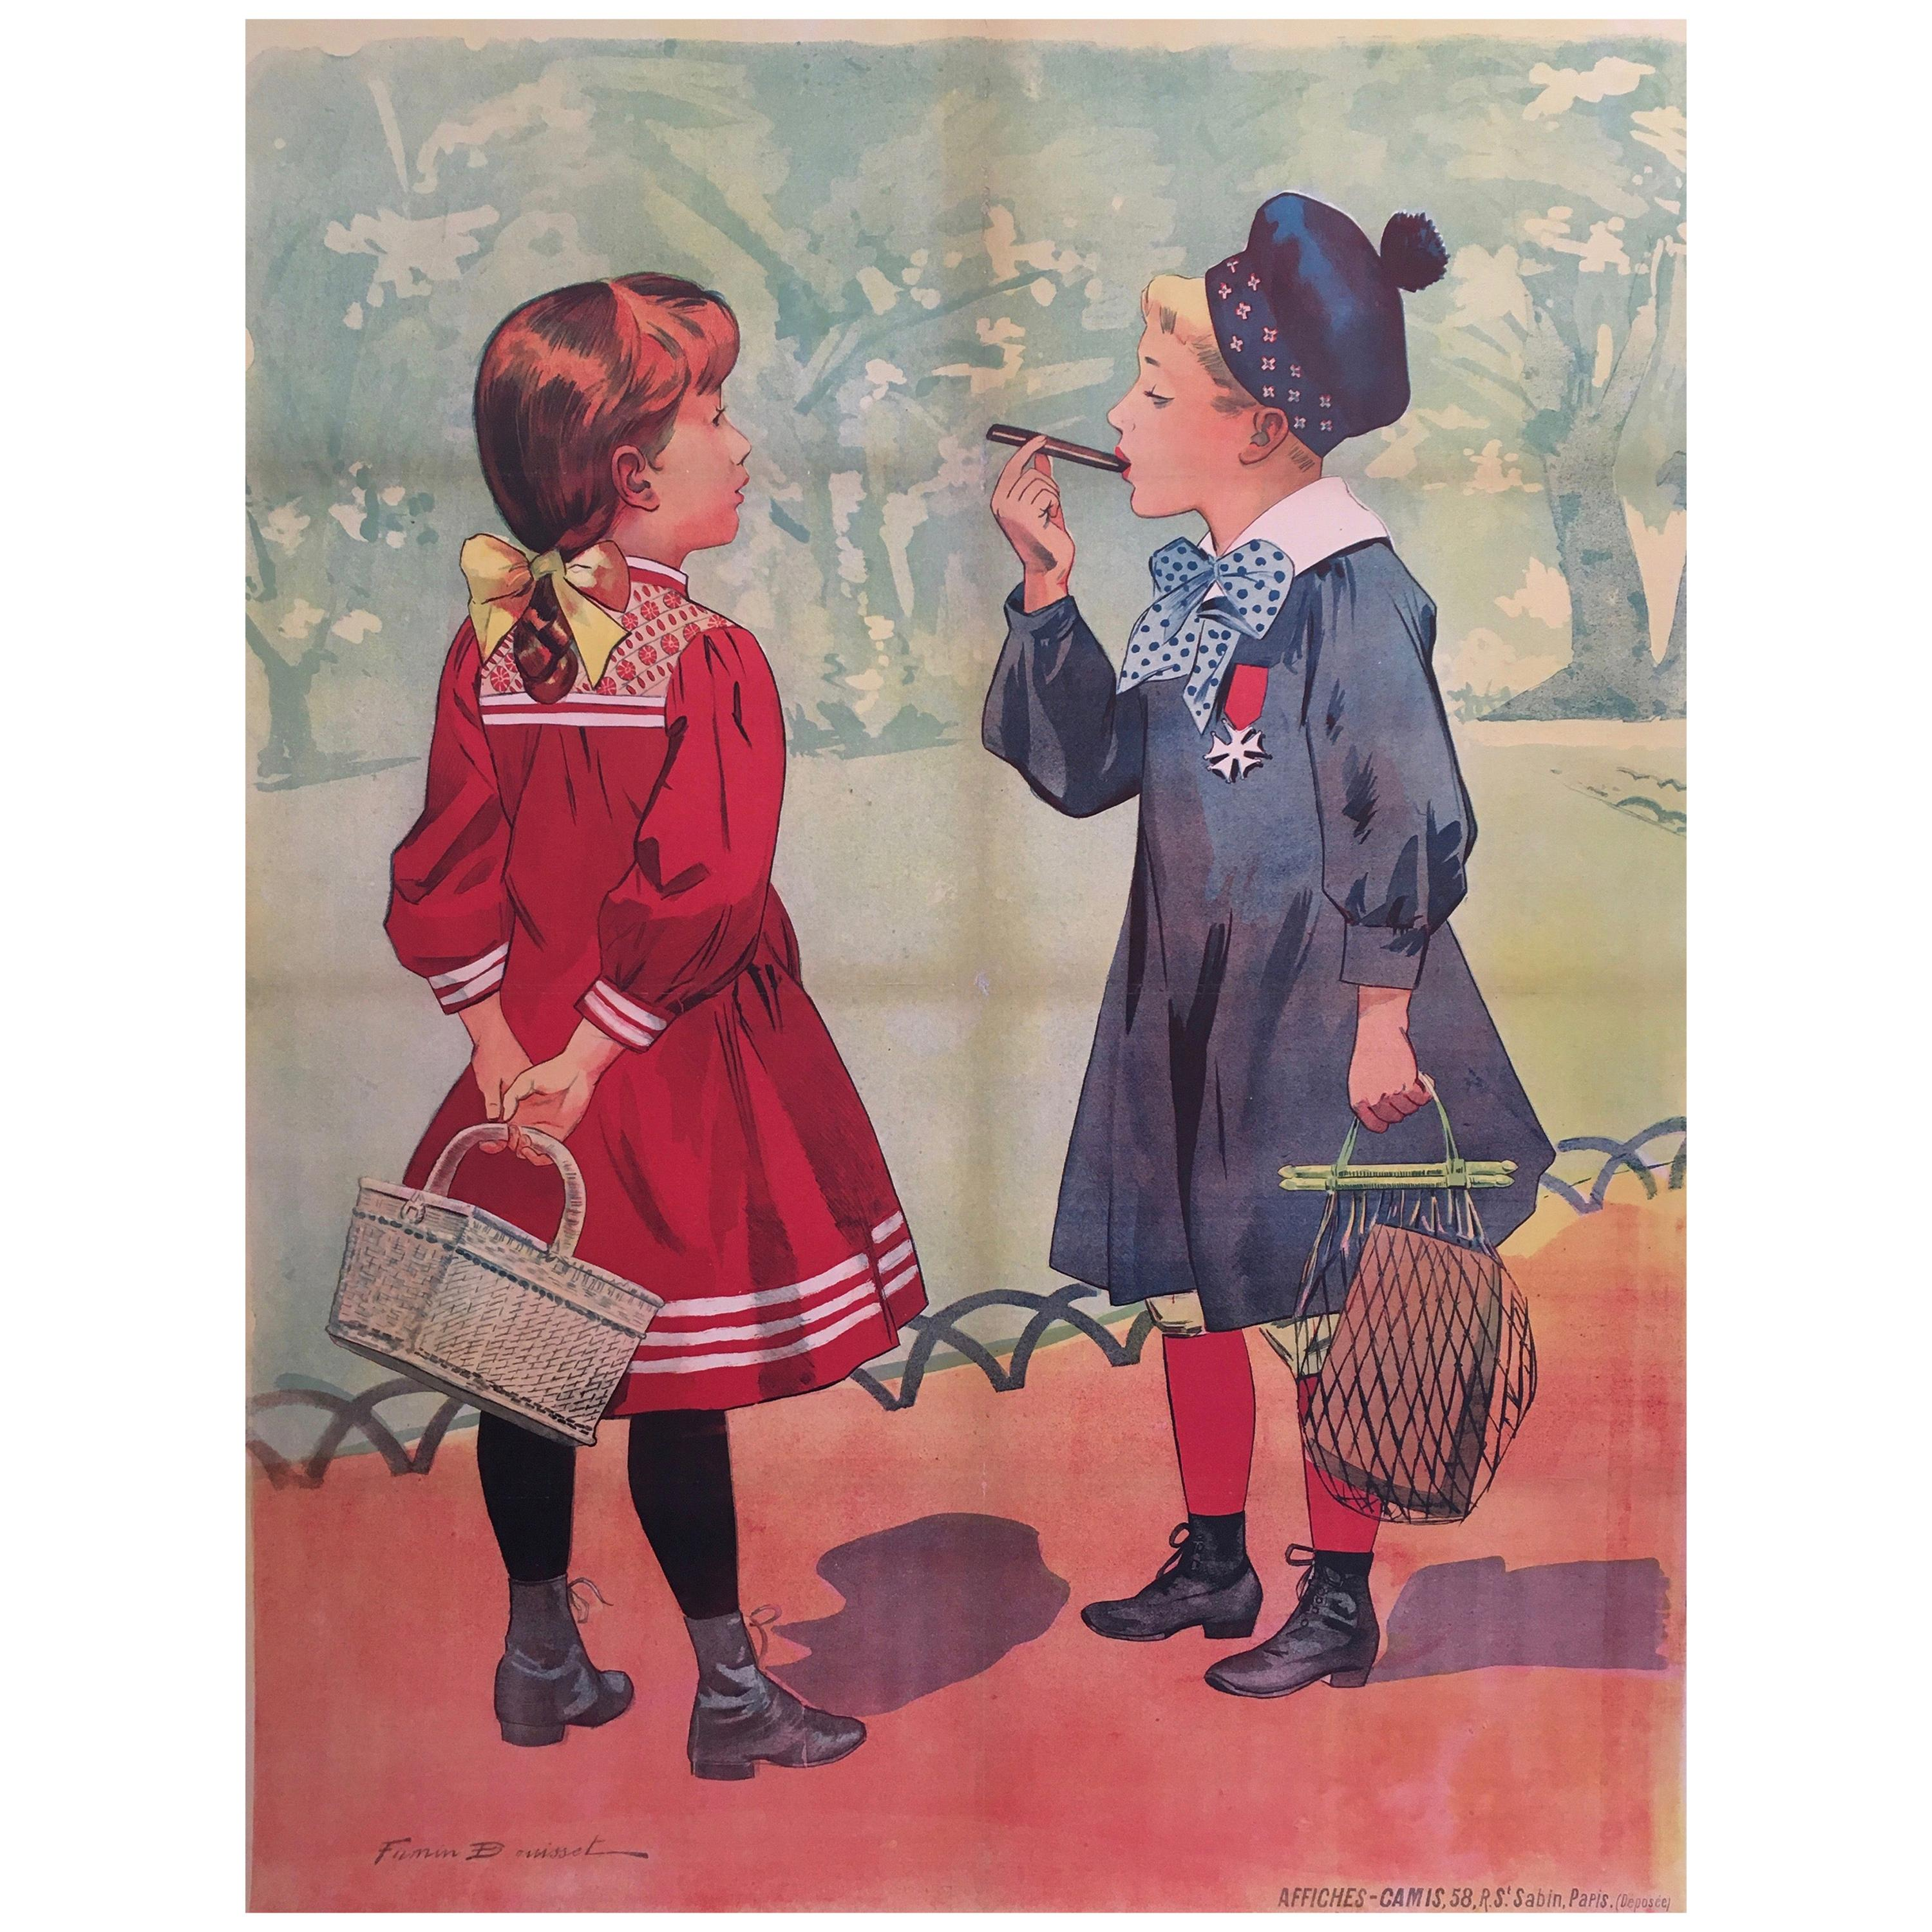 Early 20th Century Original Vintage French Poster by Firmin Bouisset